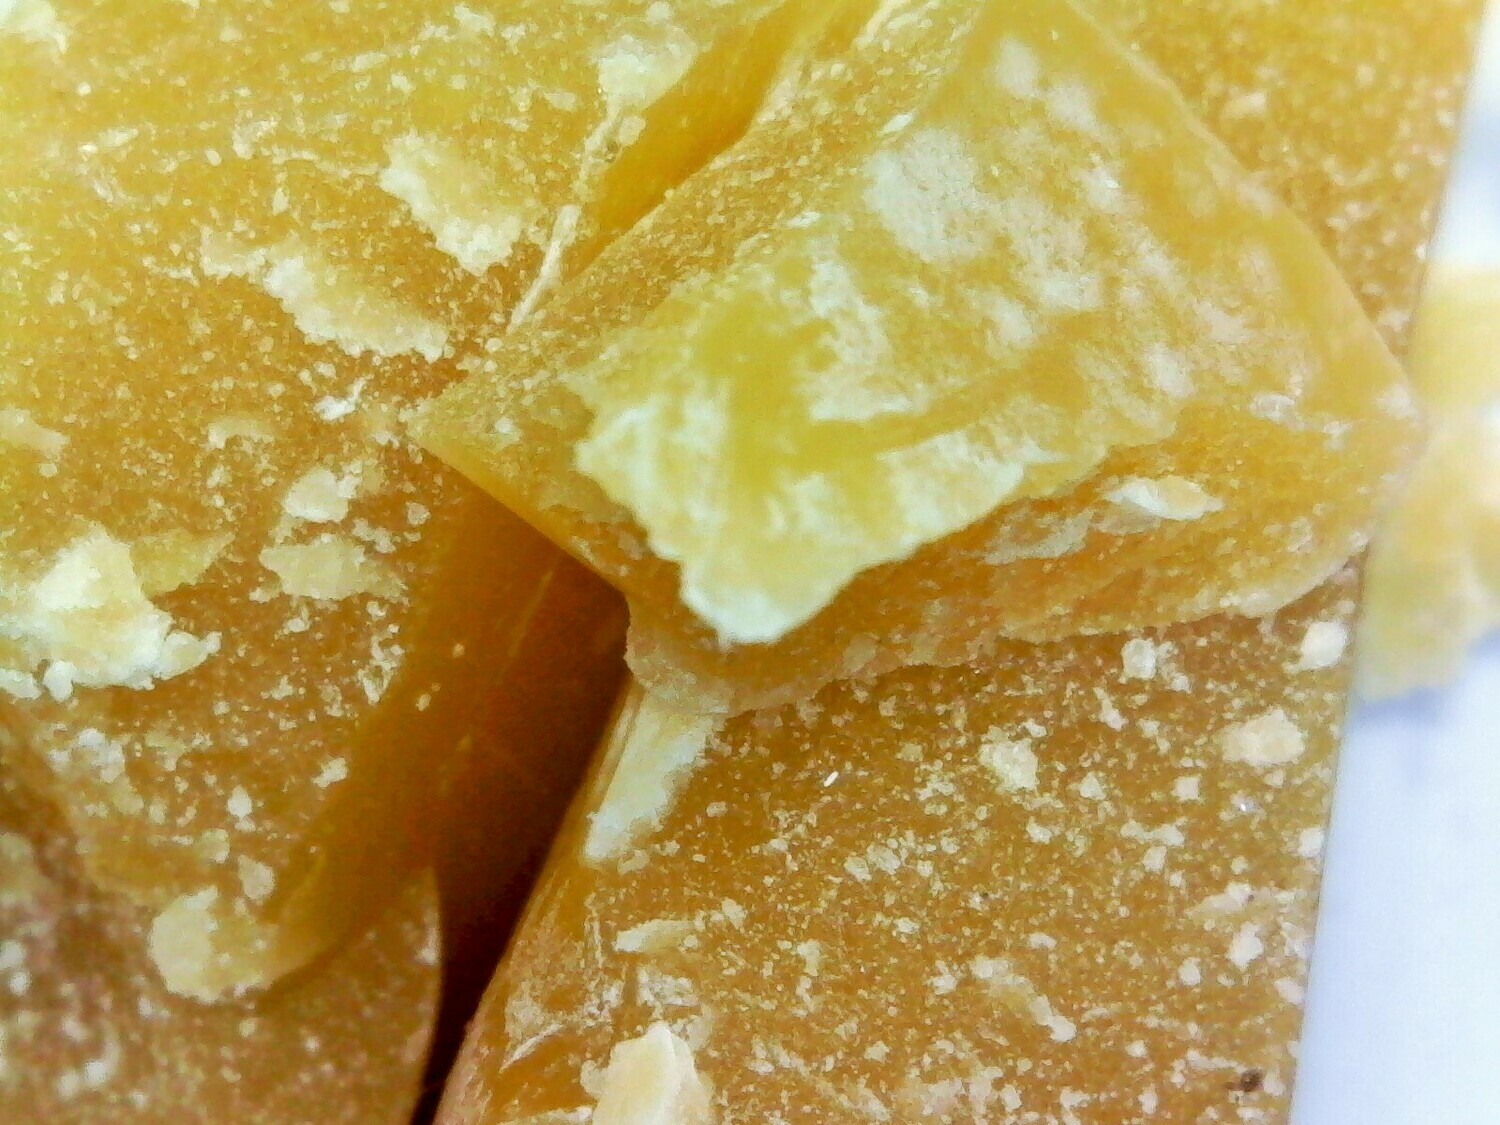 RAW BEESWAX UNFILTERED 1 pound